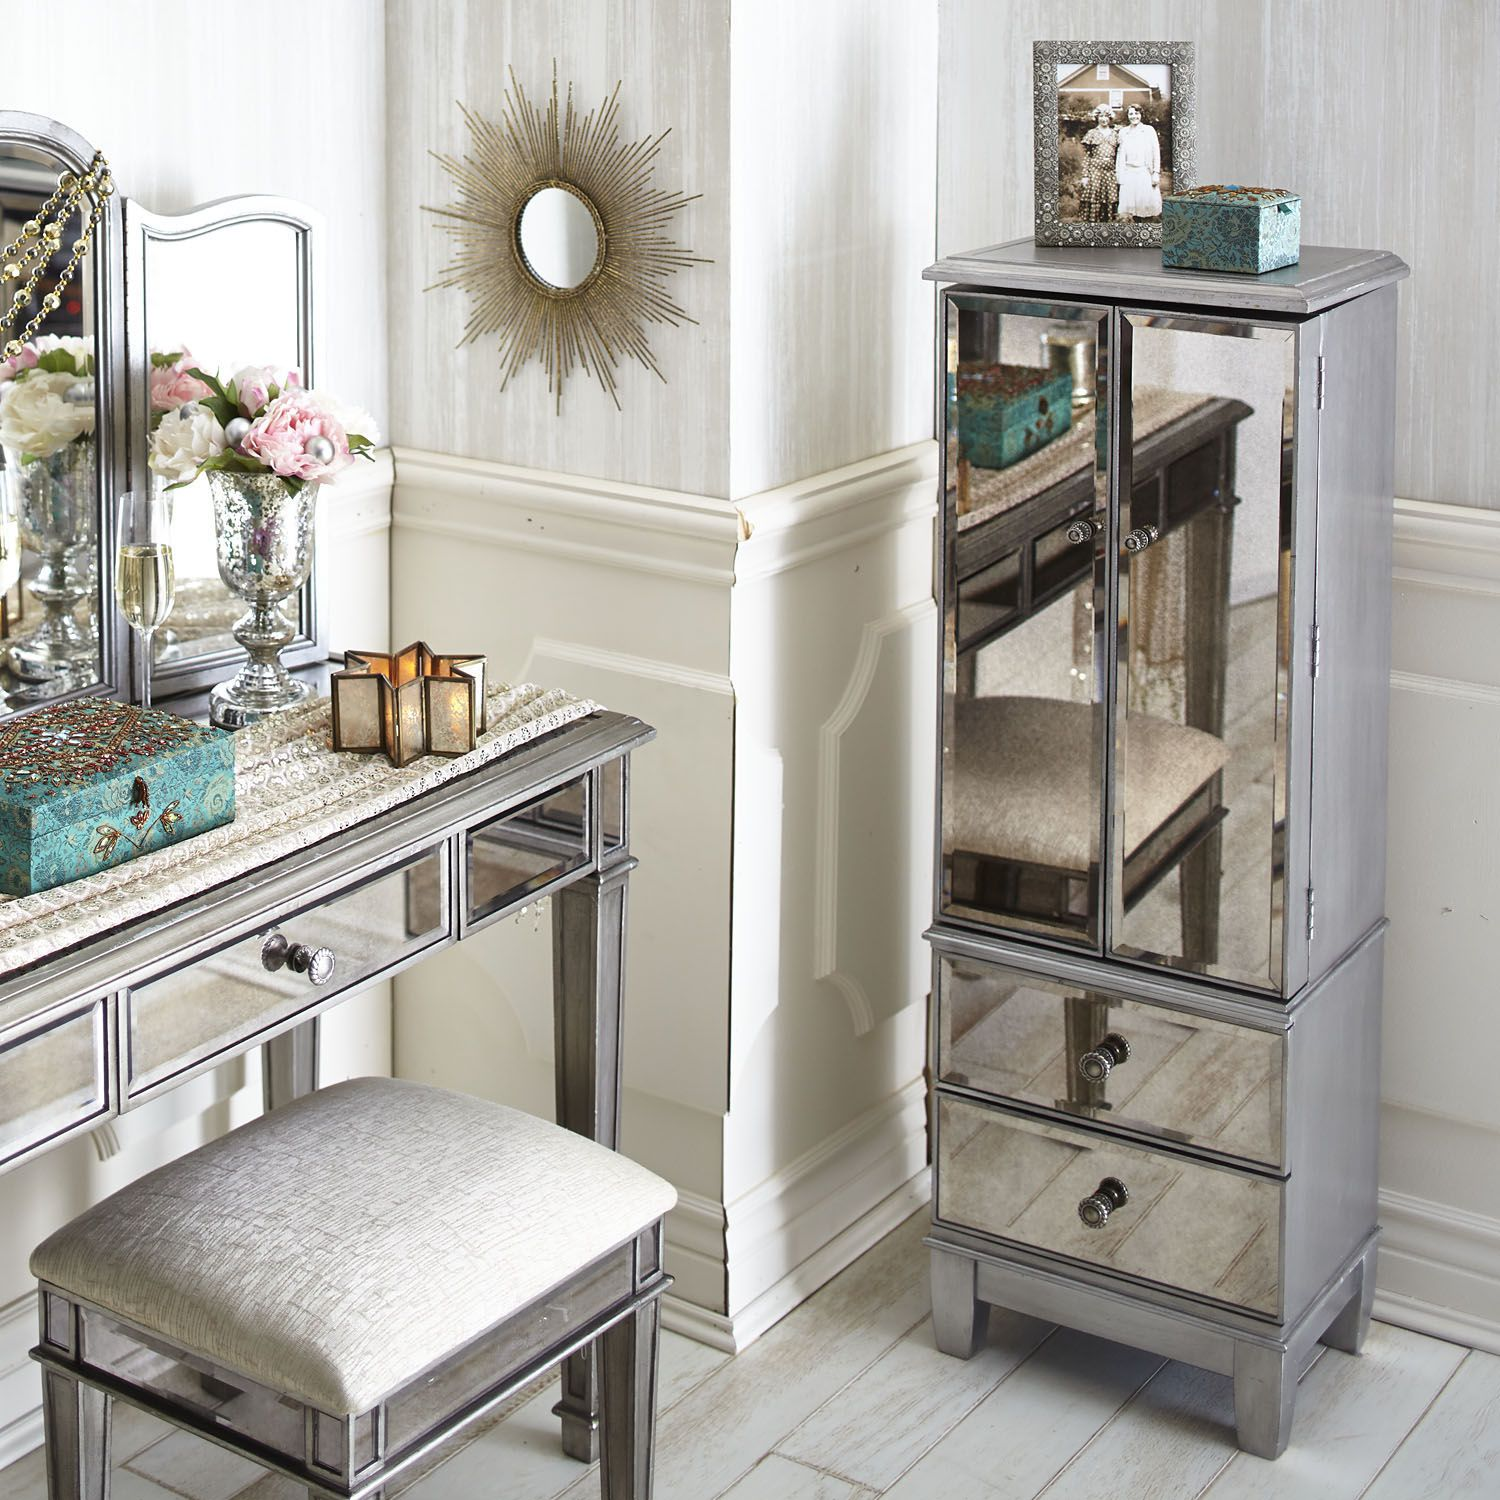 Hayworth Mirrored Silver Jewelry Armoire | Armario, Dormitorio y ...